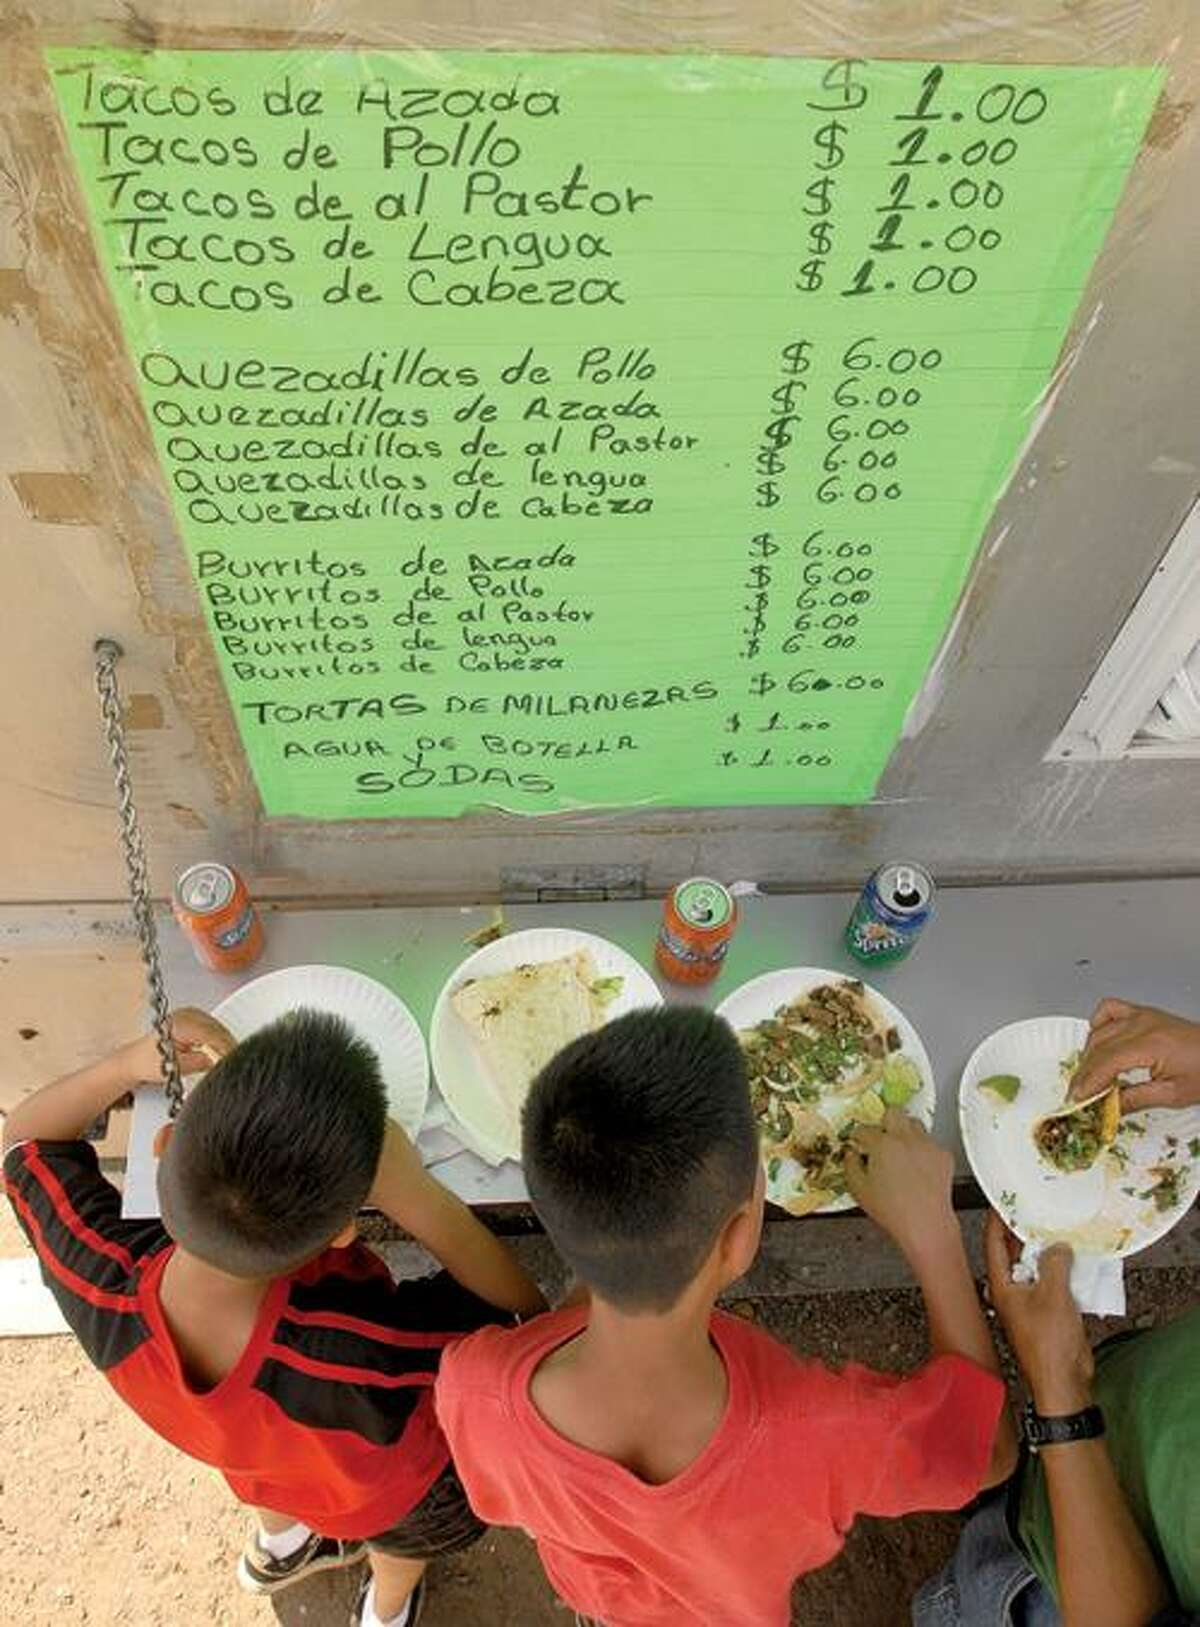 Two boys enjoy tacos at Ixtapa Mexican food truck on Long Wharf Drive. Register file photo